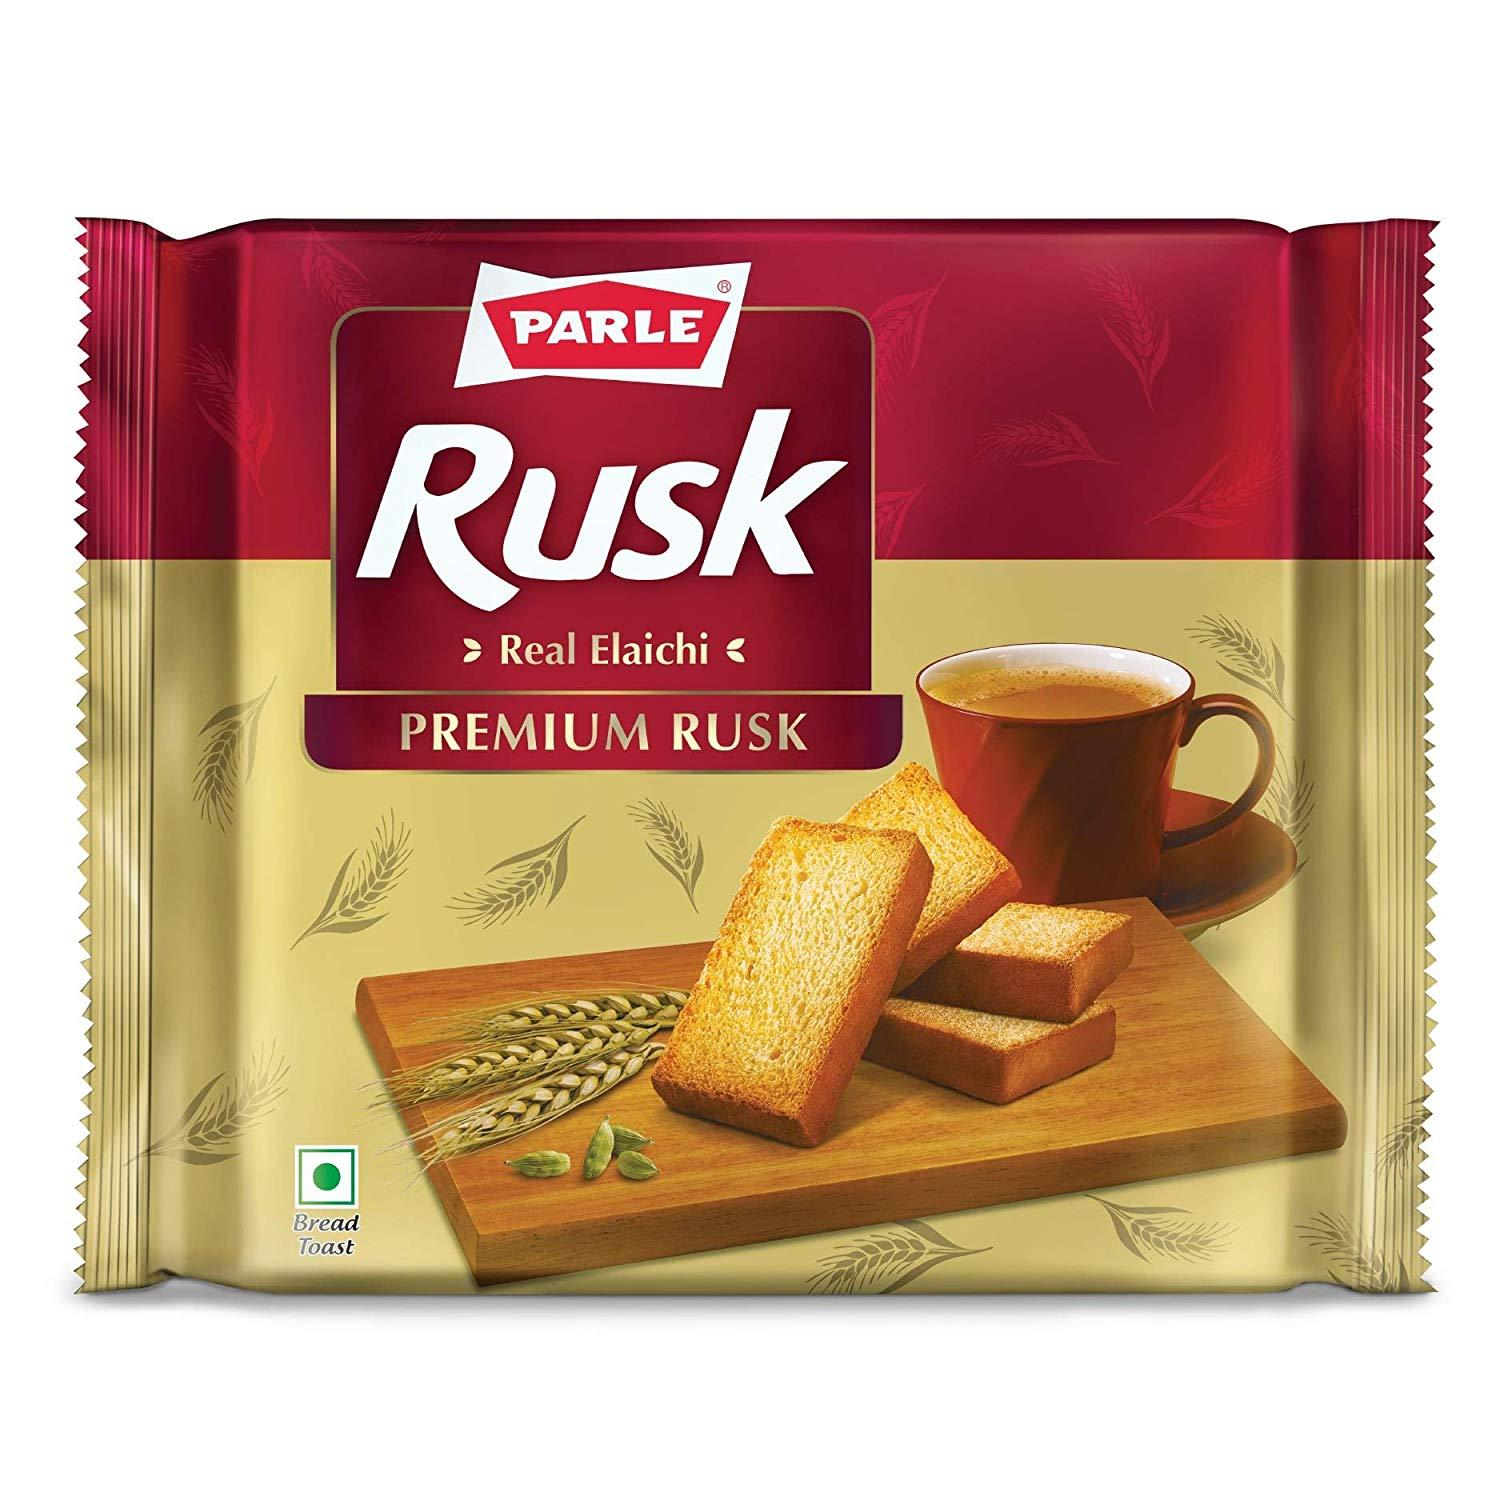 Parle Rusk - 3 X 300g (charges Includes Shipping Fee) By Best Buy Mini Mart.